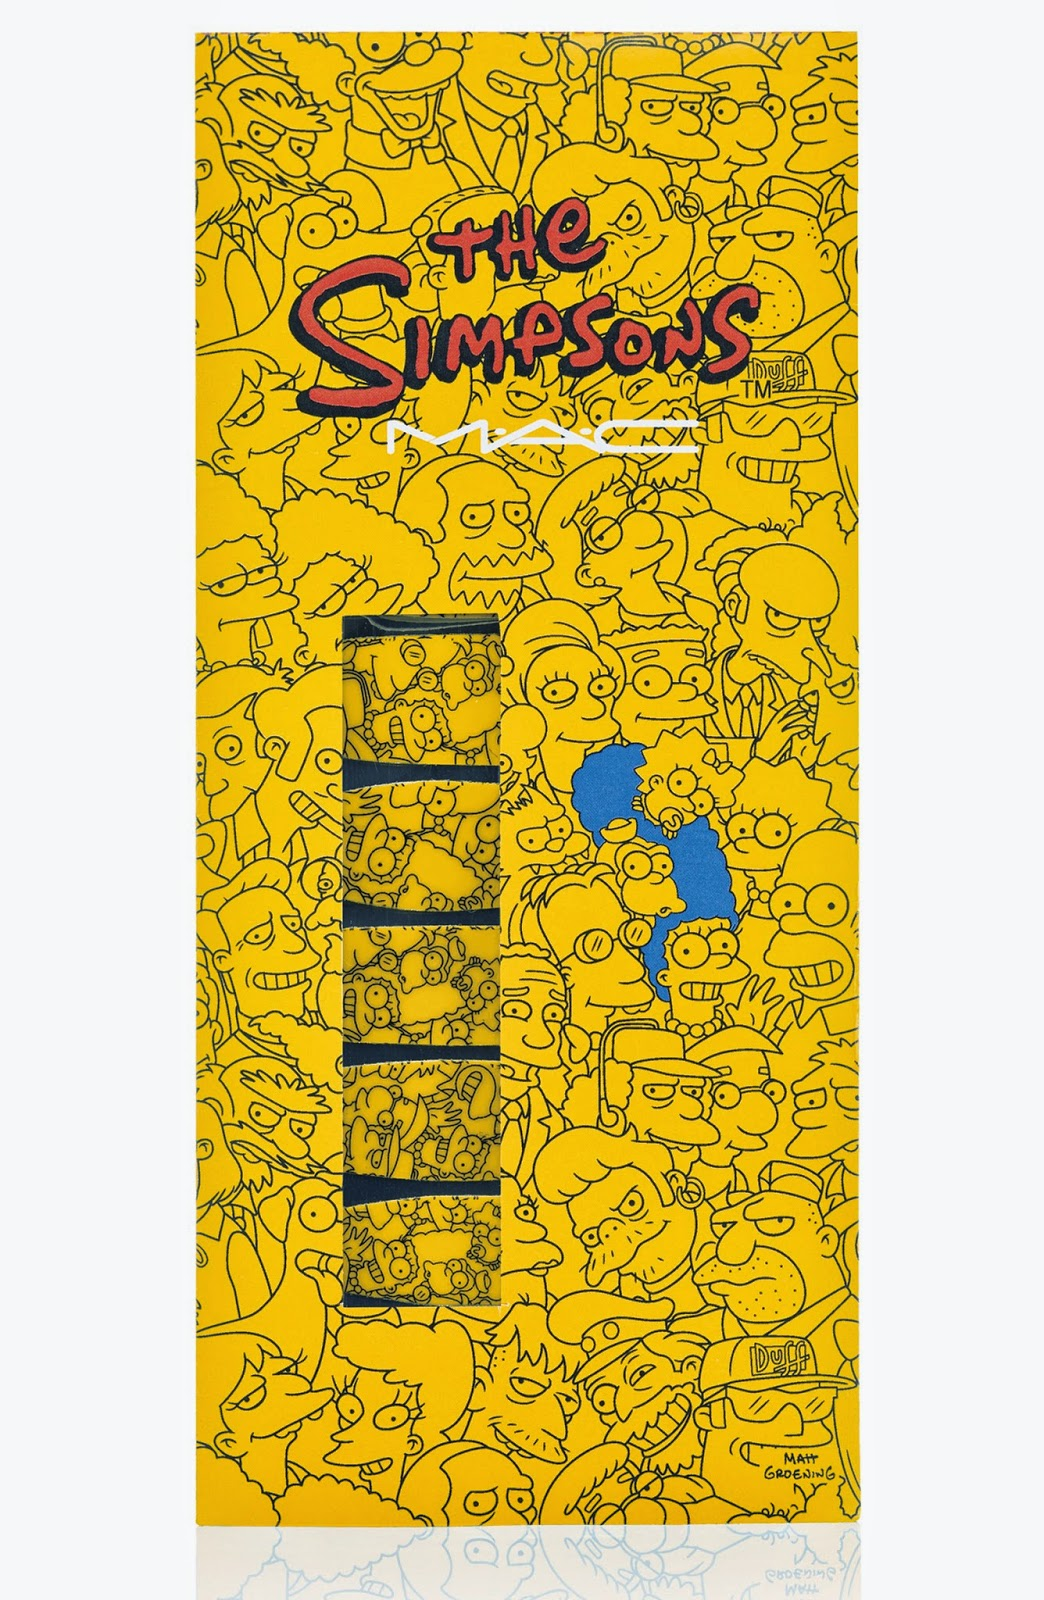 Introducing MAC: The Simpsons, Artificially Wild, Studio Sculpt And Matchmaster Concealer Collections! - A Beauty Influencer''s View: The Best of Fashion, ...